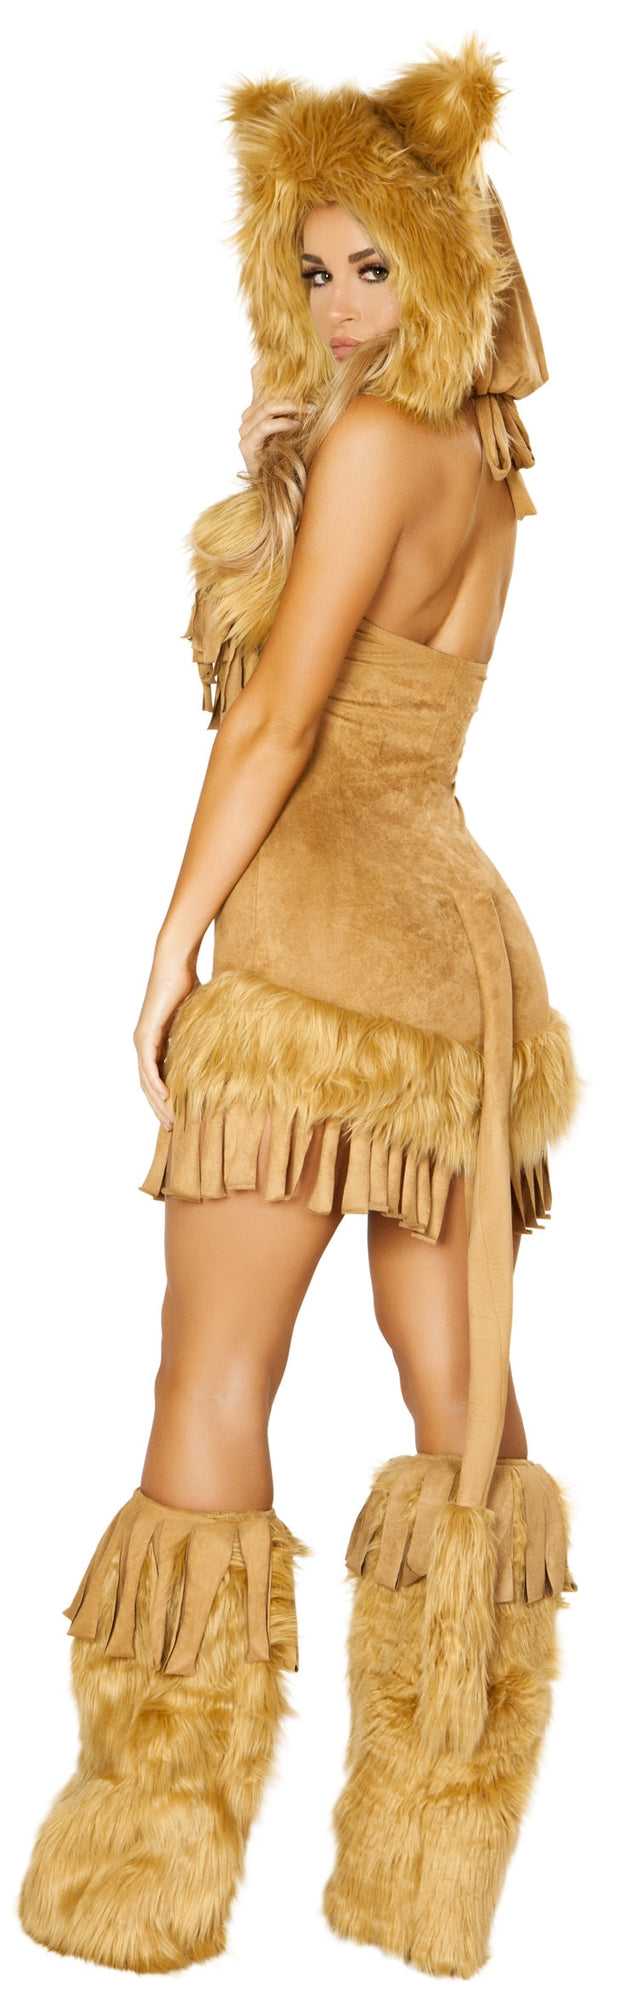 RM-4872 The bashful Lion Costume back